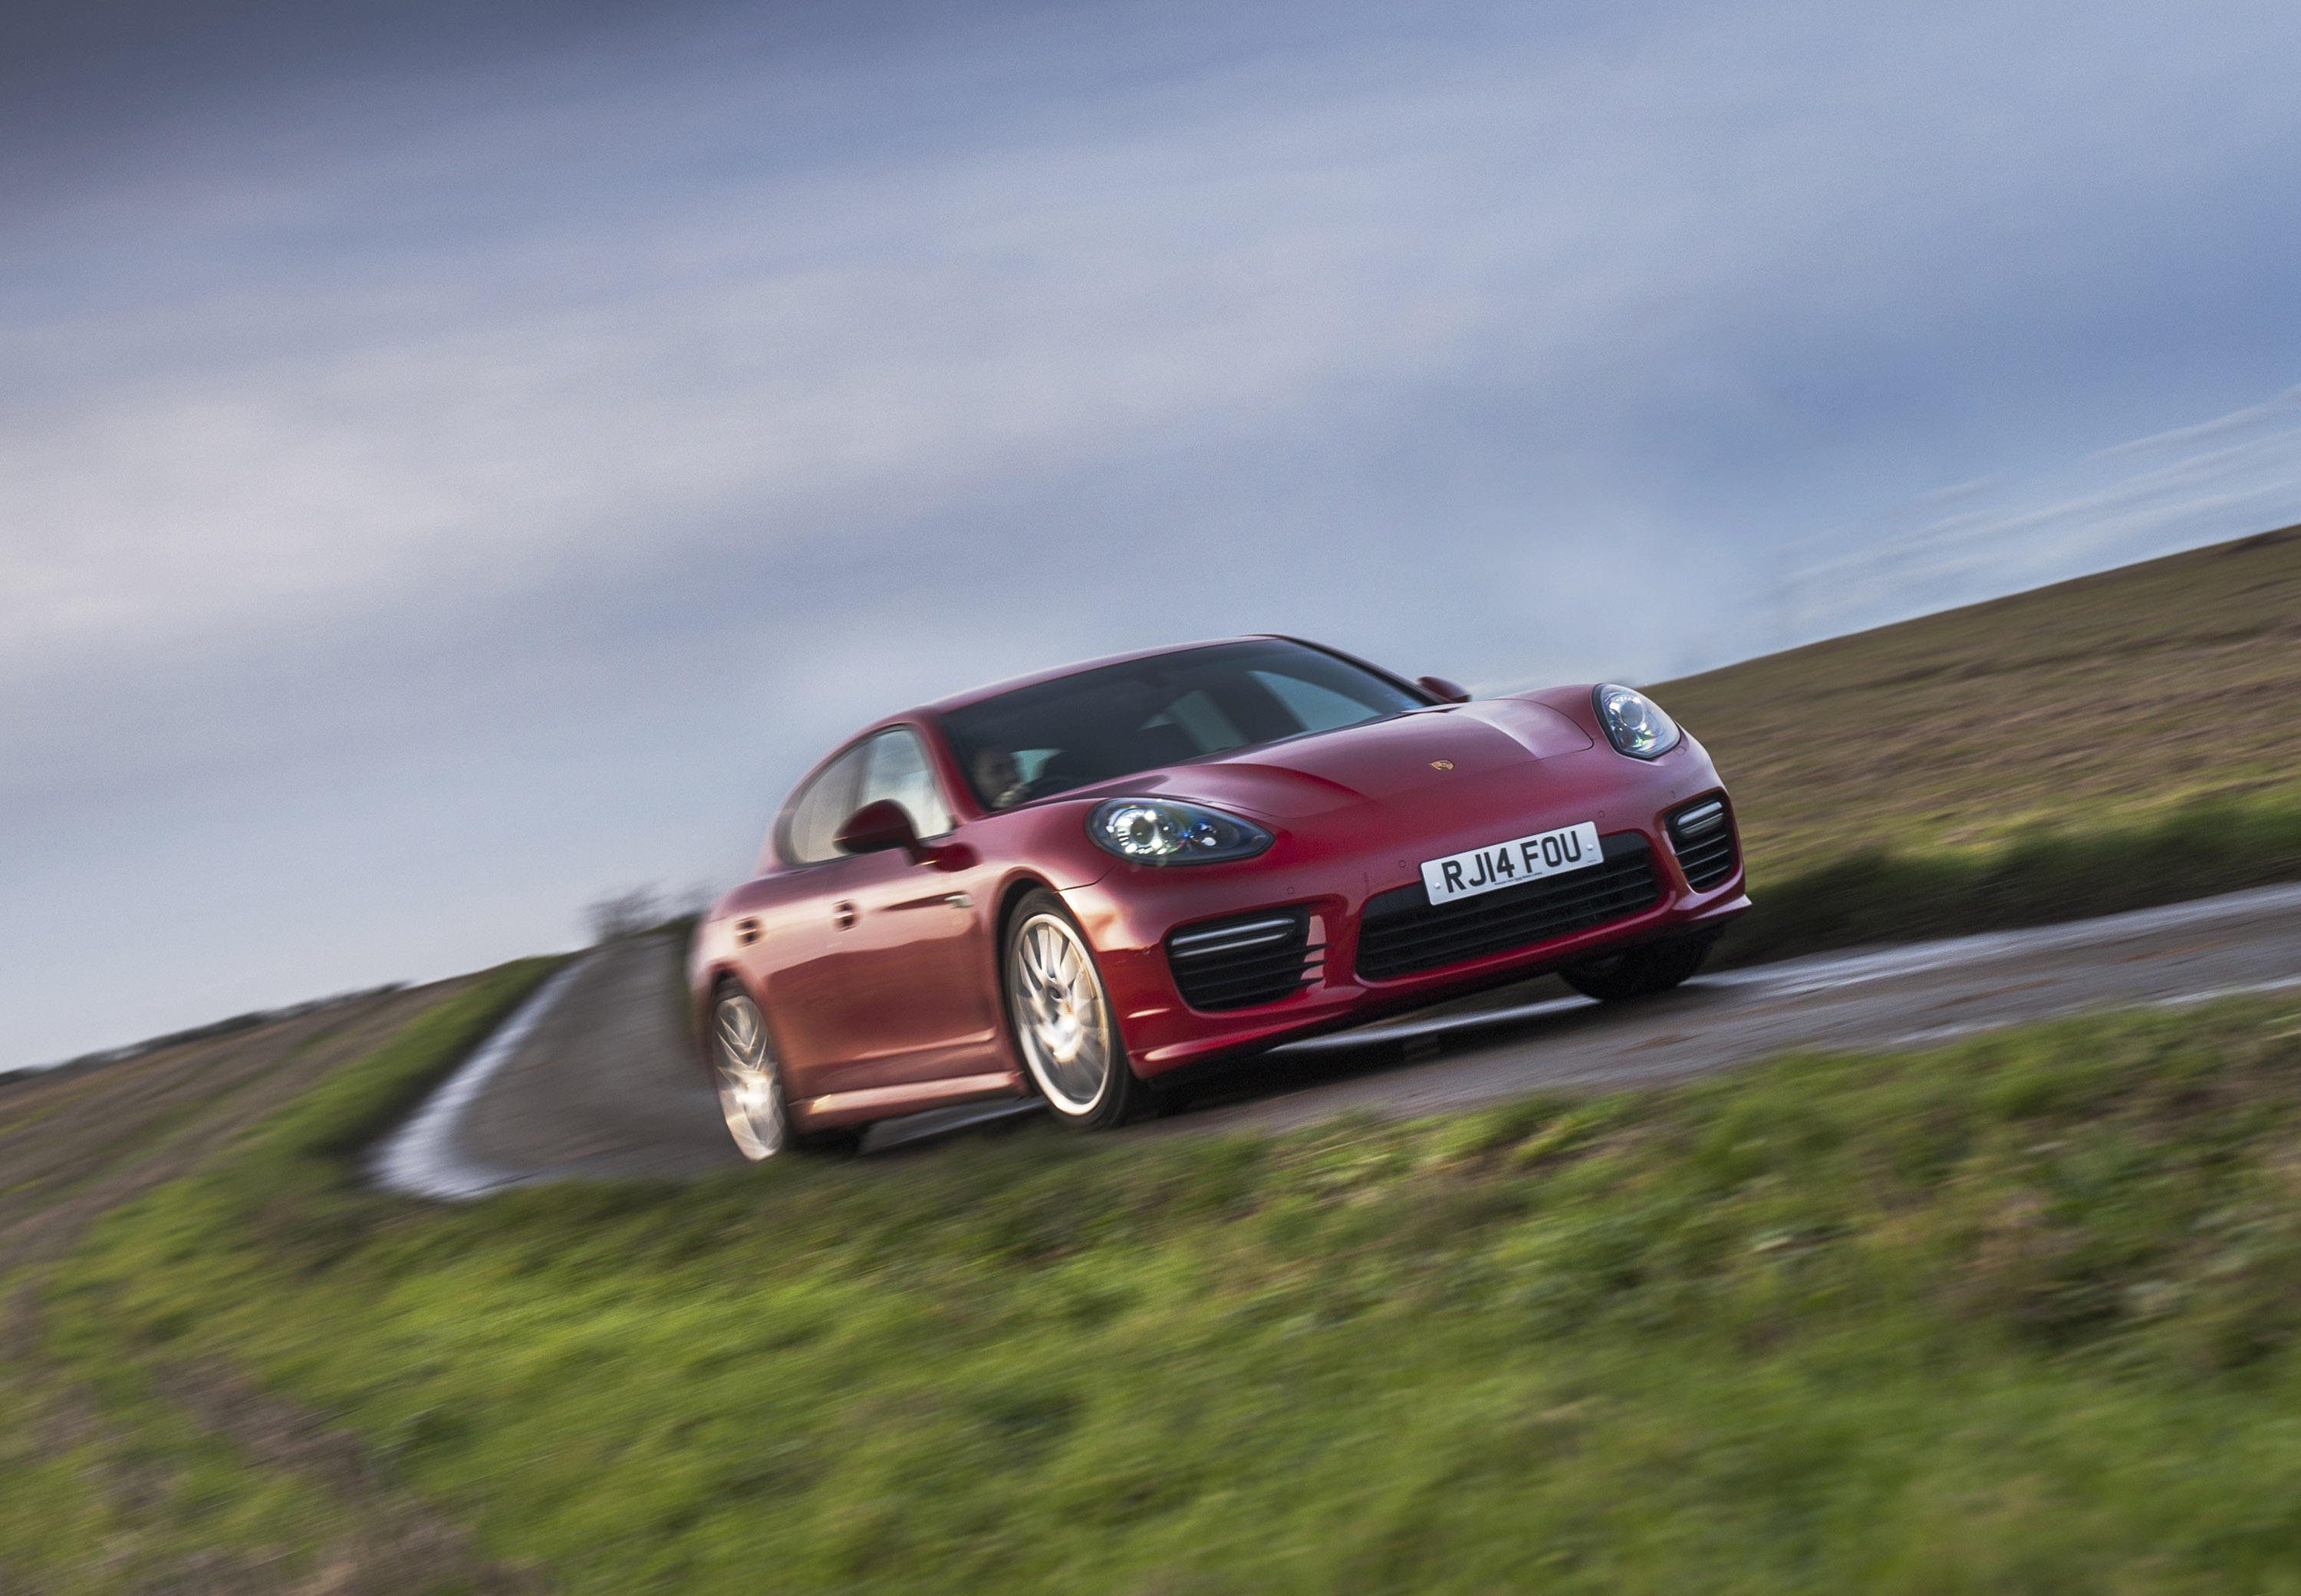 Porsche Panamera Gts Review Prices Specs And 0 60 Time Evo